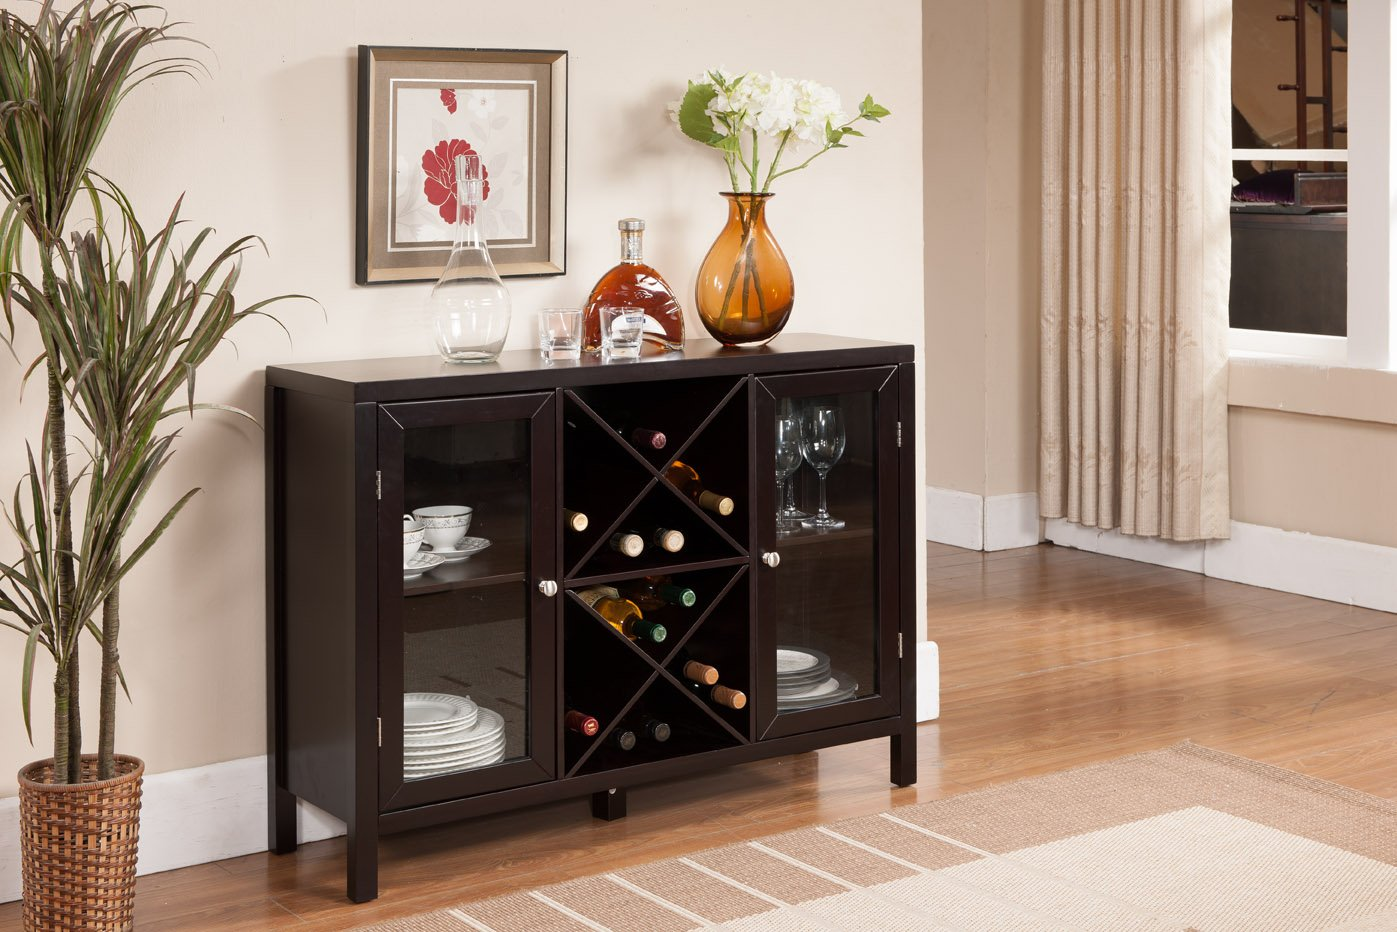 Superb img of  Espresso Finish Wood Wine Rack Console Sideboard Table With Storage with #9C3F30 color and 1397x932 pixels